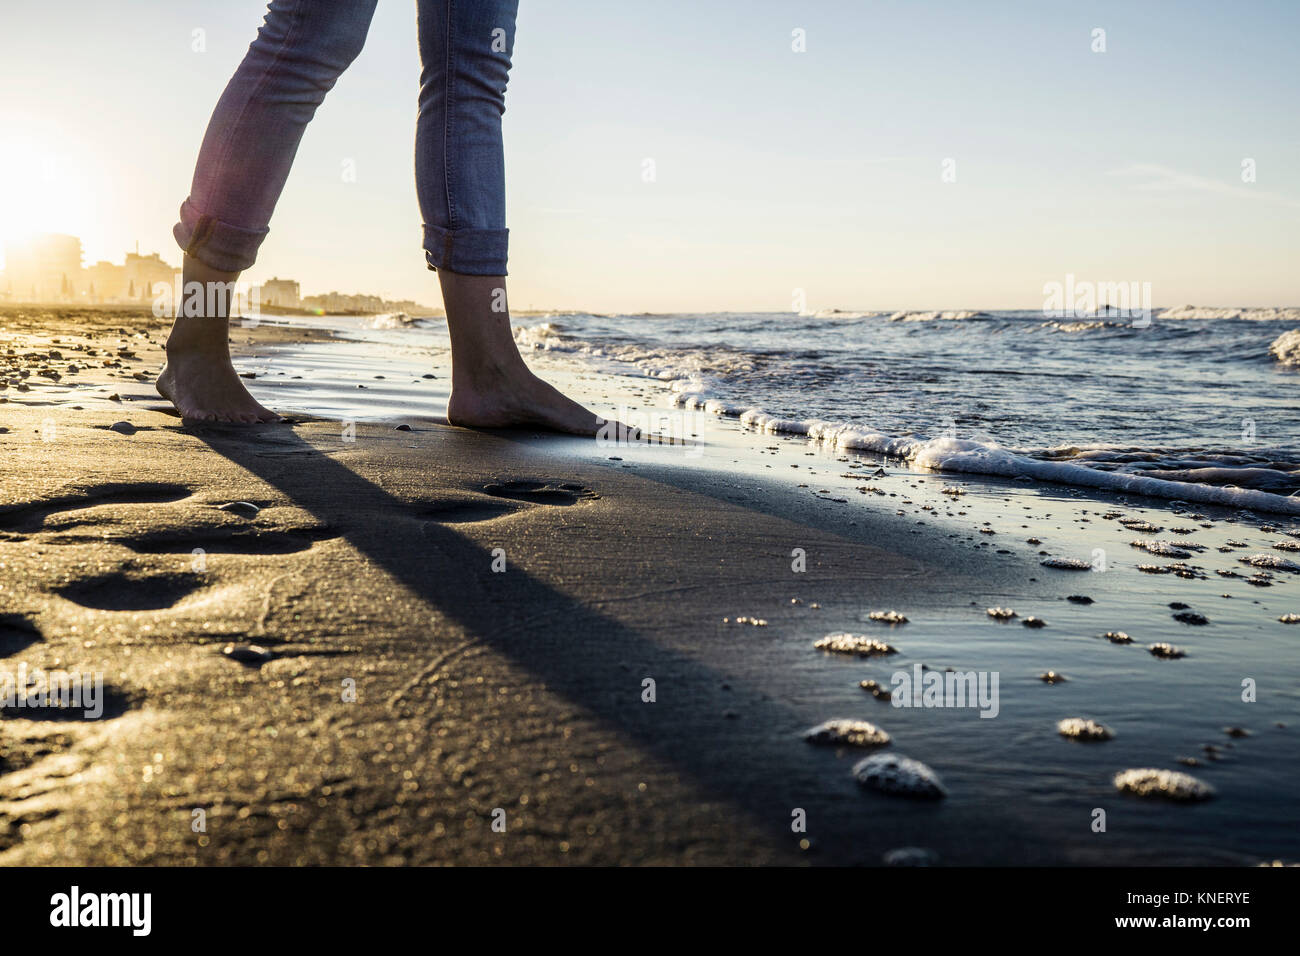 Legs of barefooted woman standing at water's edge on beach, Riccione, Emilia-Romagna, Italy - Stock Image